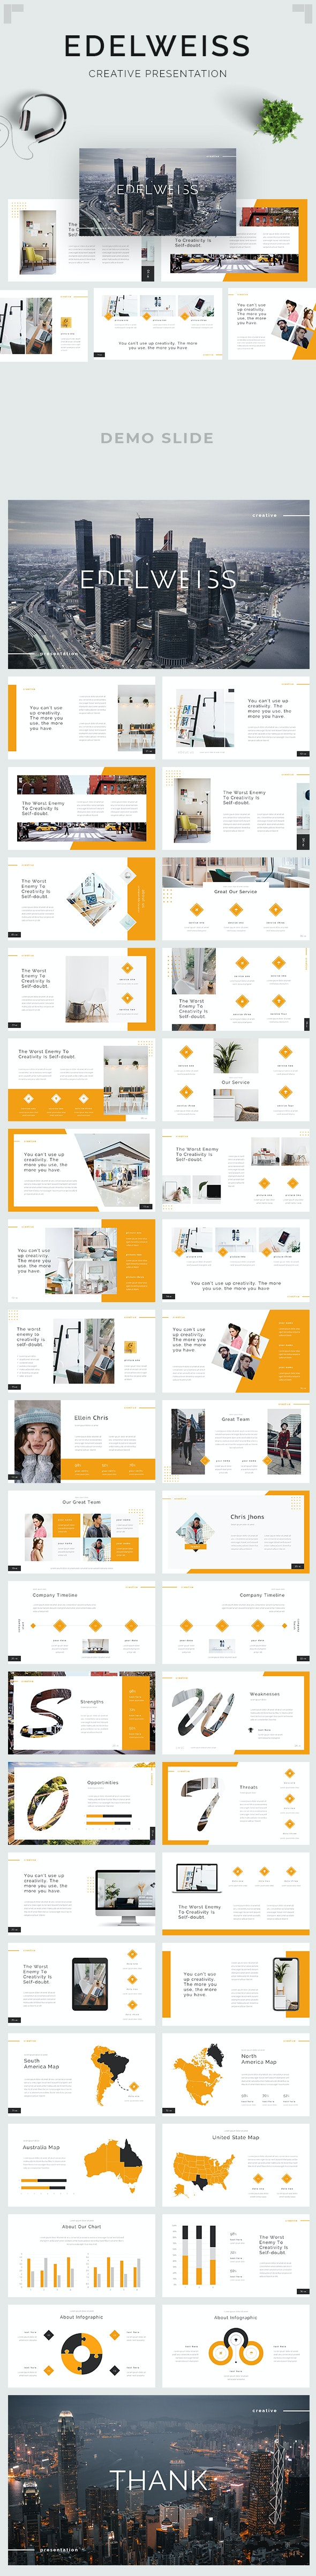 Edelweiss - Creative Keynote Template - Creative Keynote Templates